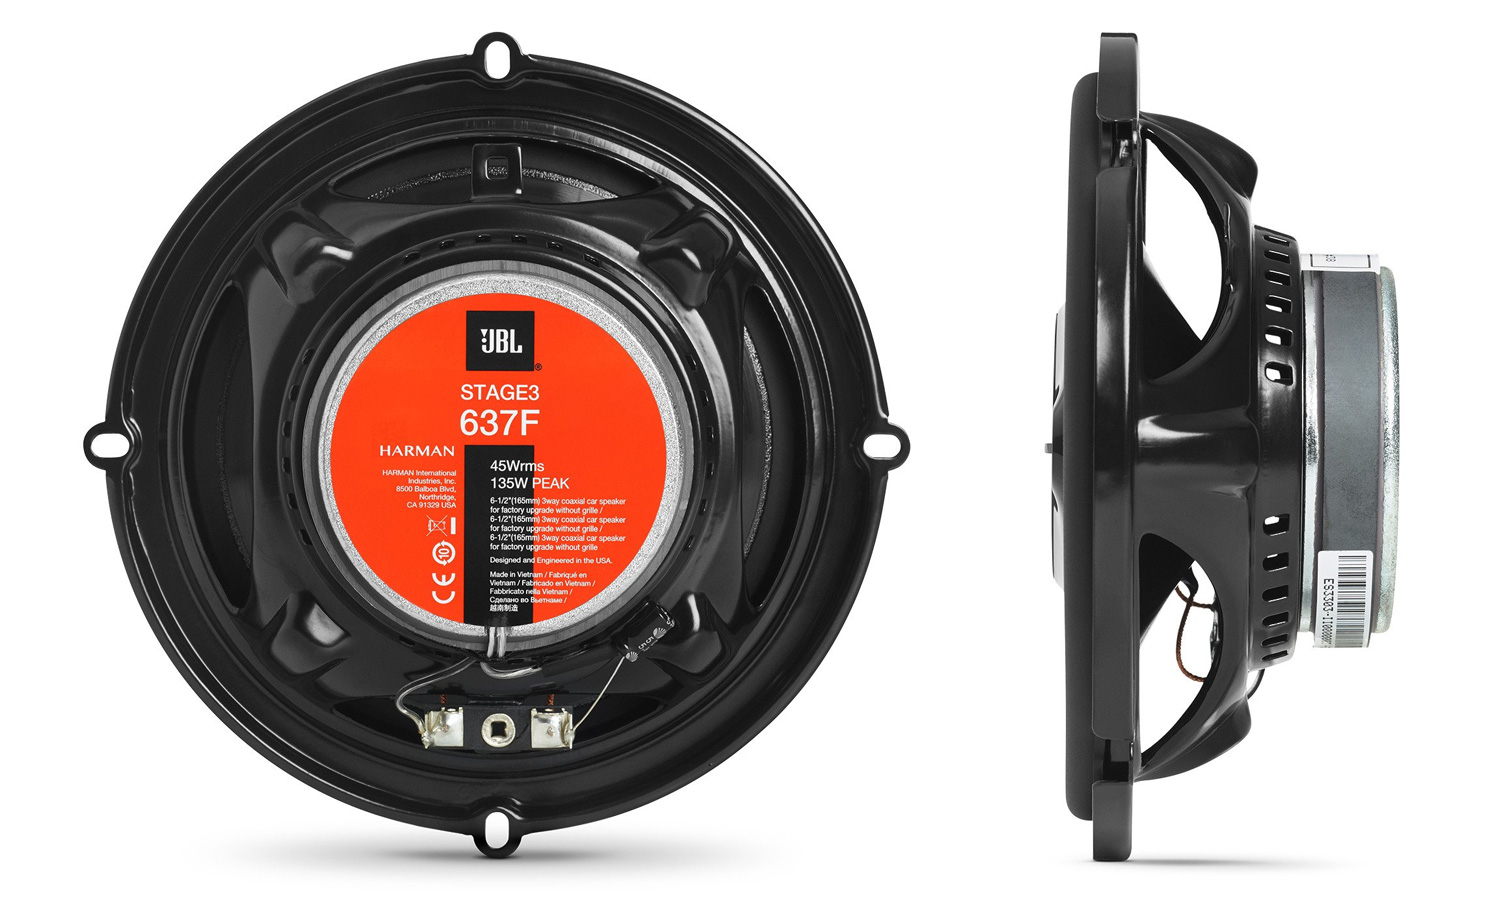 JBL Competitively Tuned